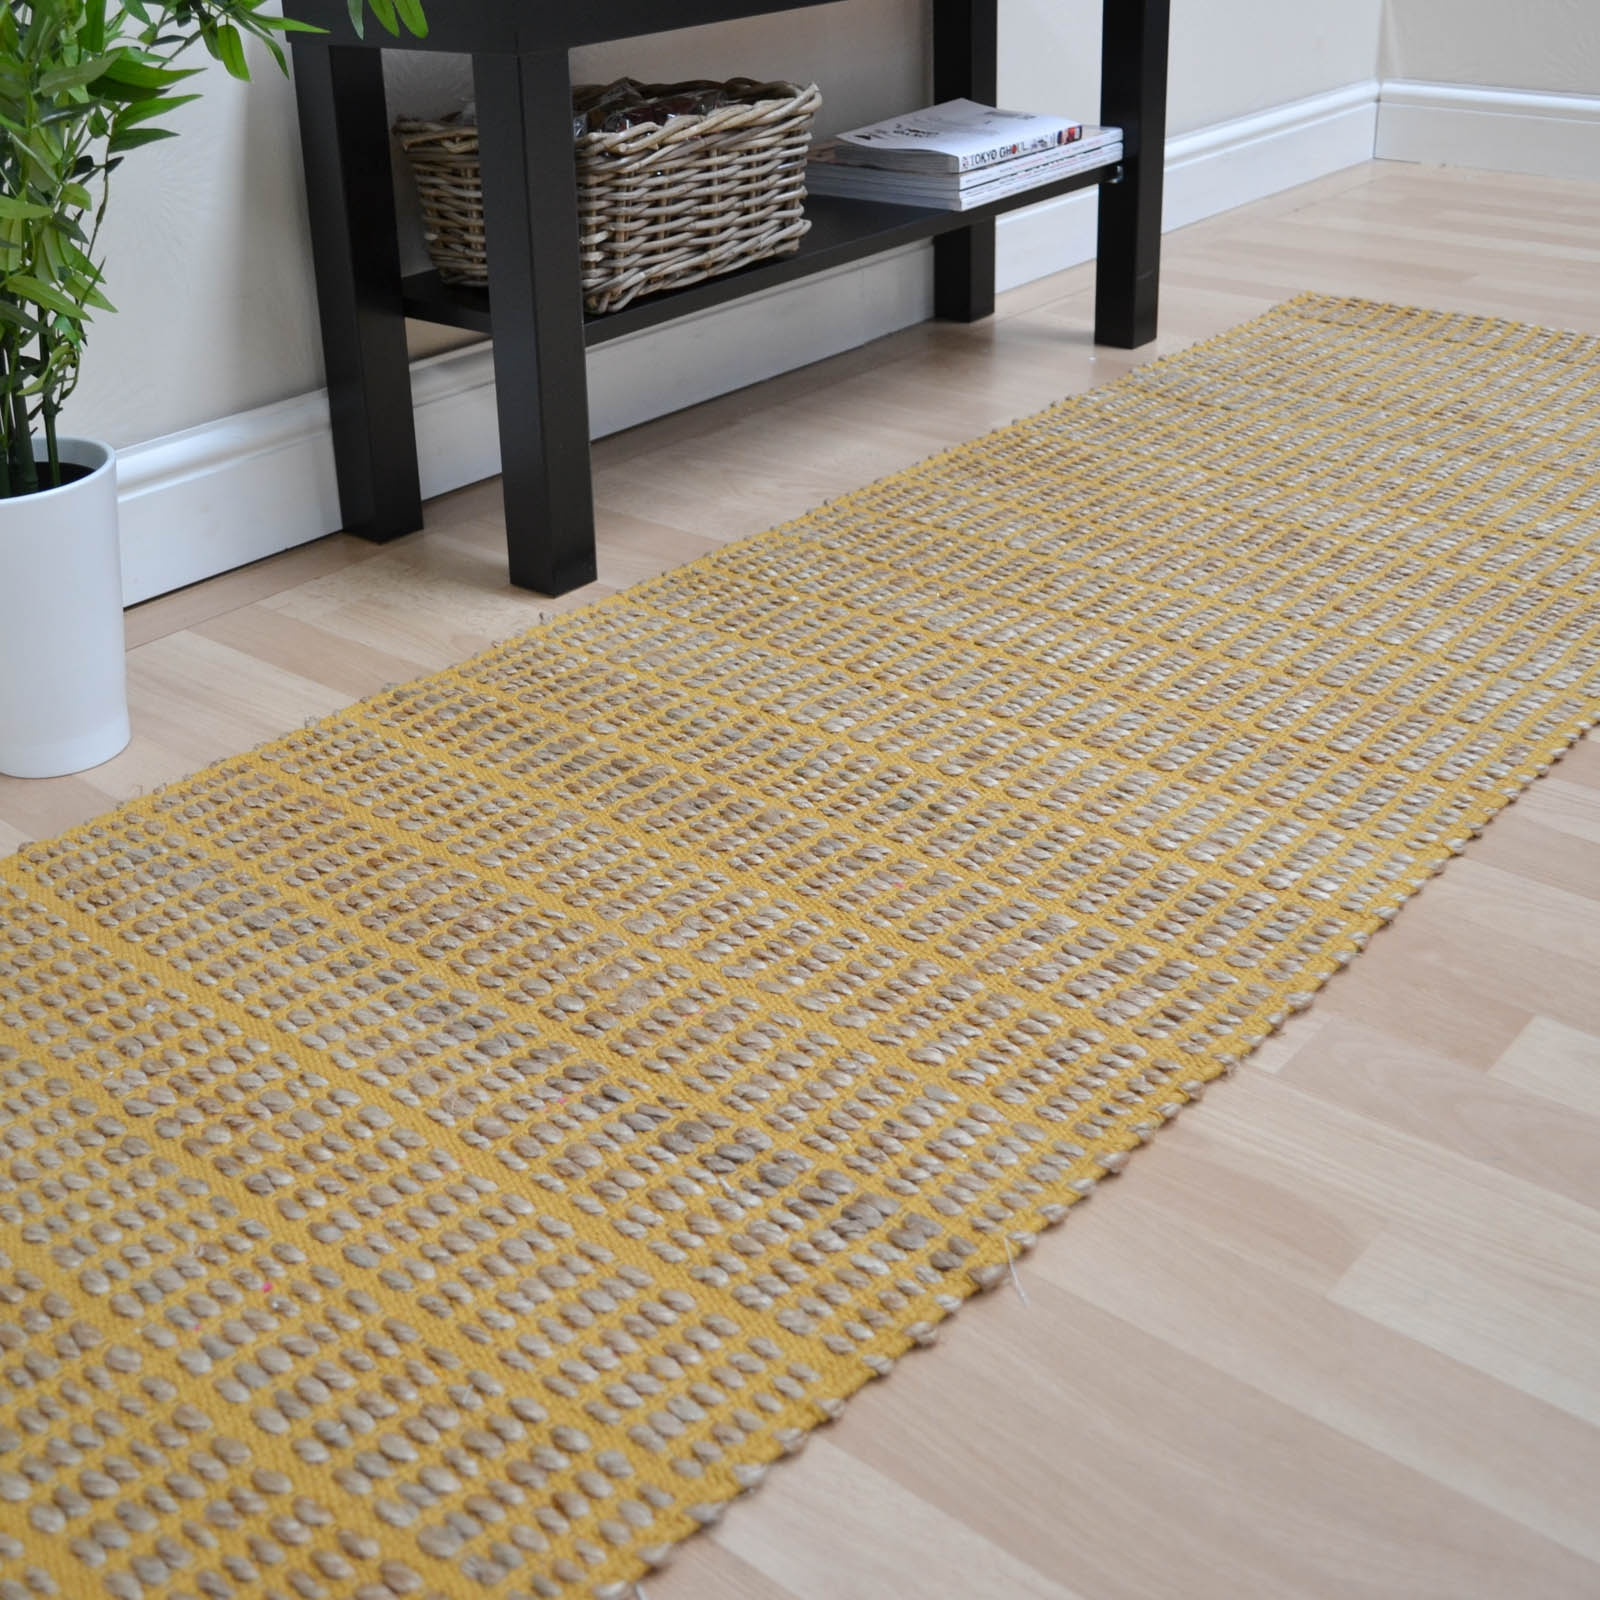 Hall Rugs Uk Roselawnlutheran Regarding Hallway Floor Runners (#11 of 20)